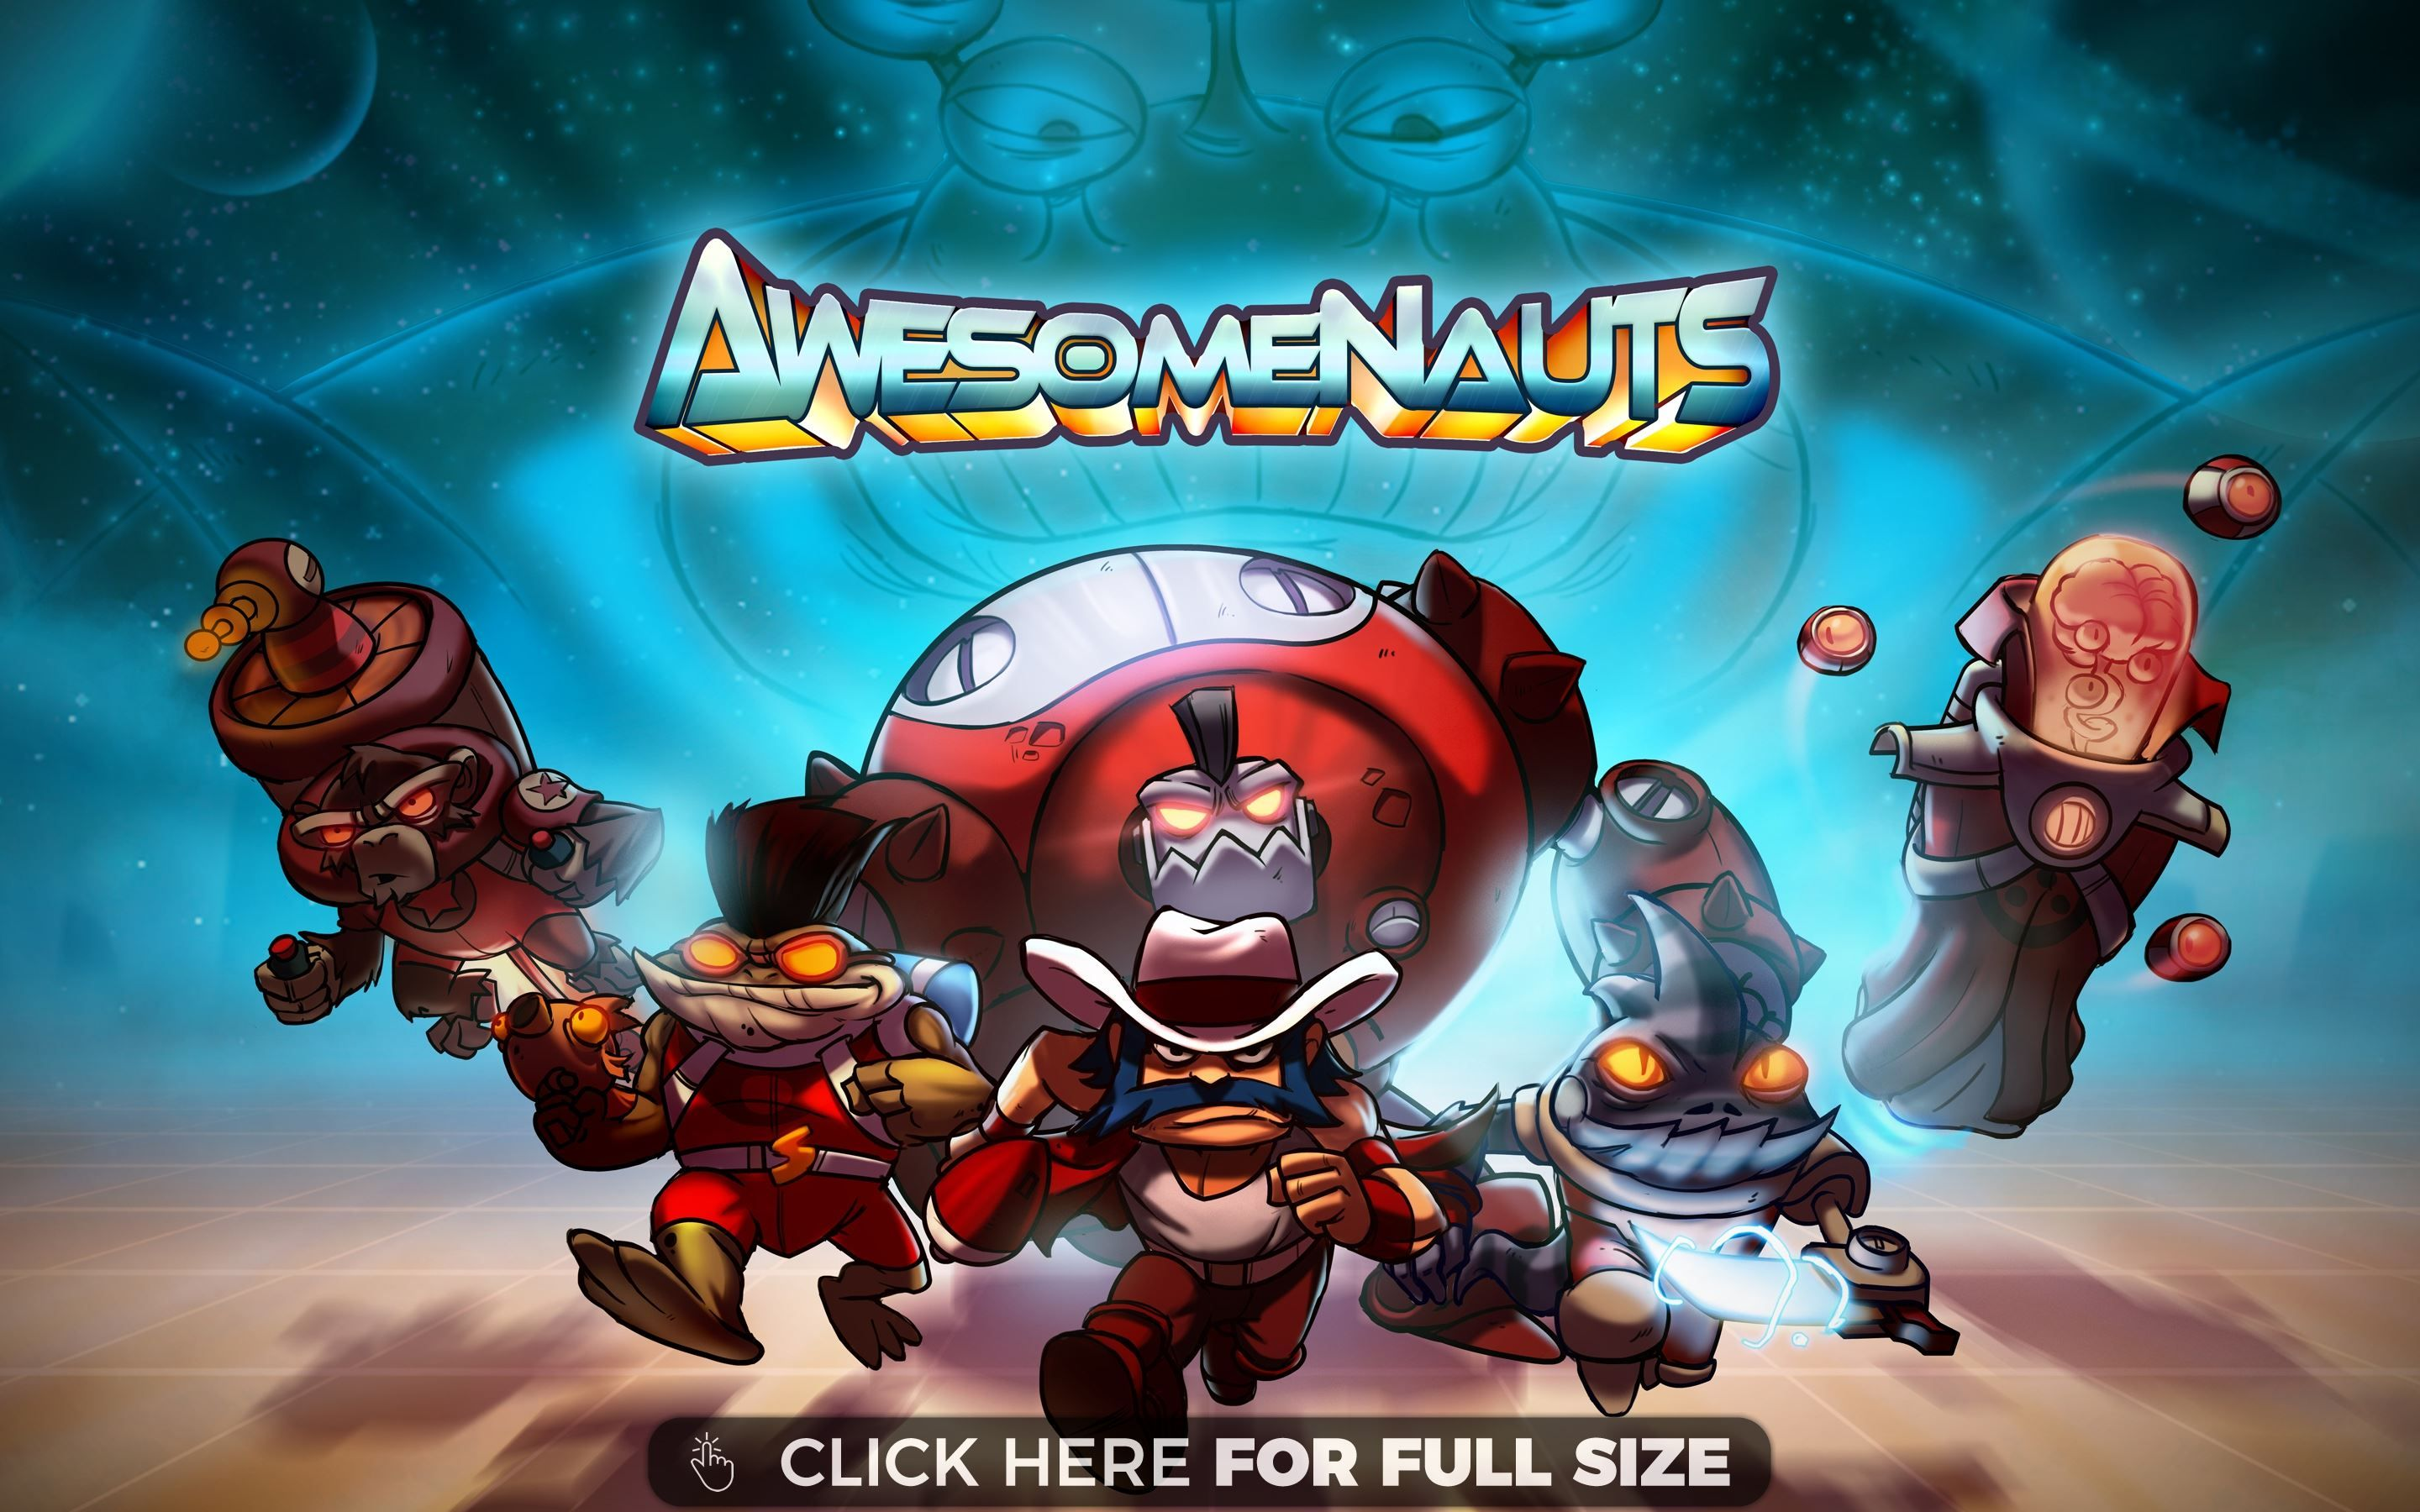 awesomenauts video game | desktop wallpapers | pinterest | video